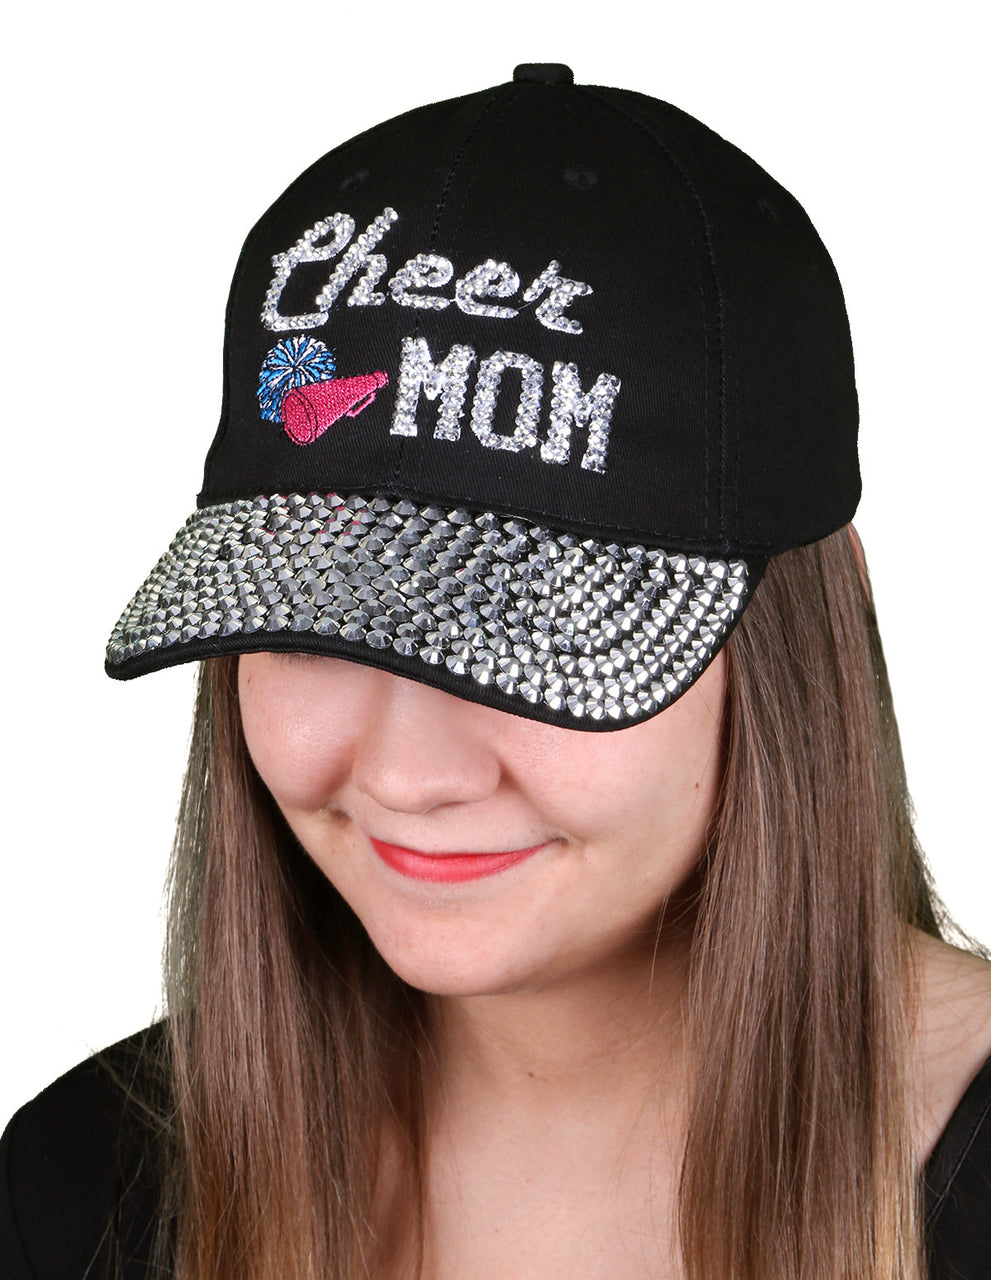 Funky Junque's Women's Silver Rhinestone Bill Sports Mom Bling Baseball Cap Hat - Cheer Black